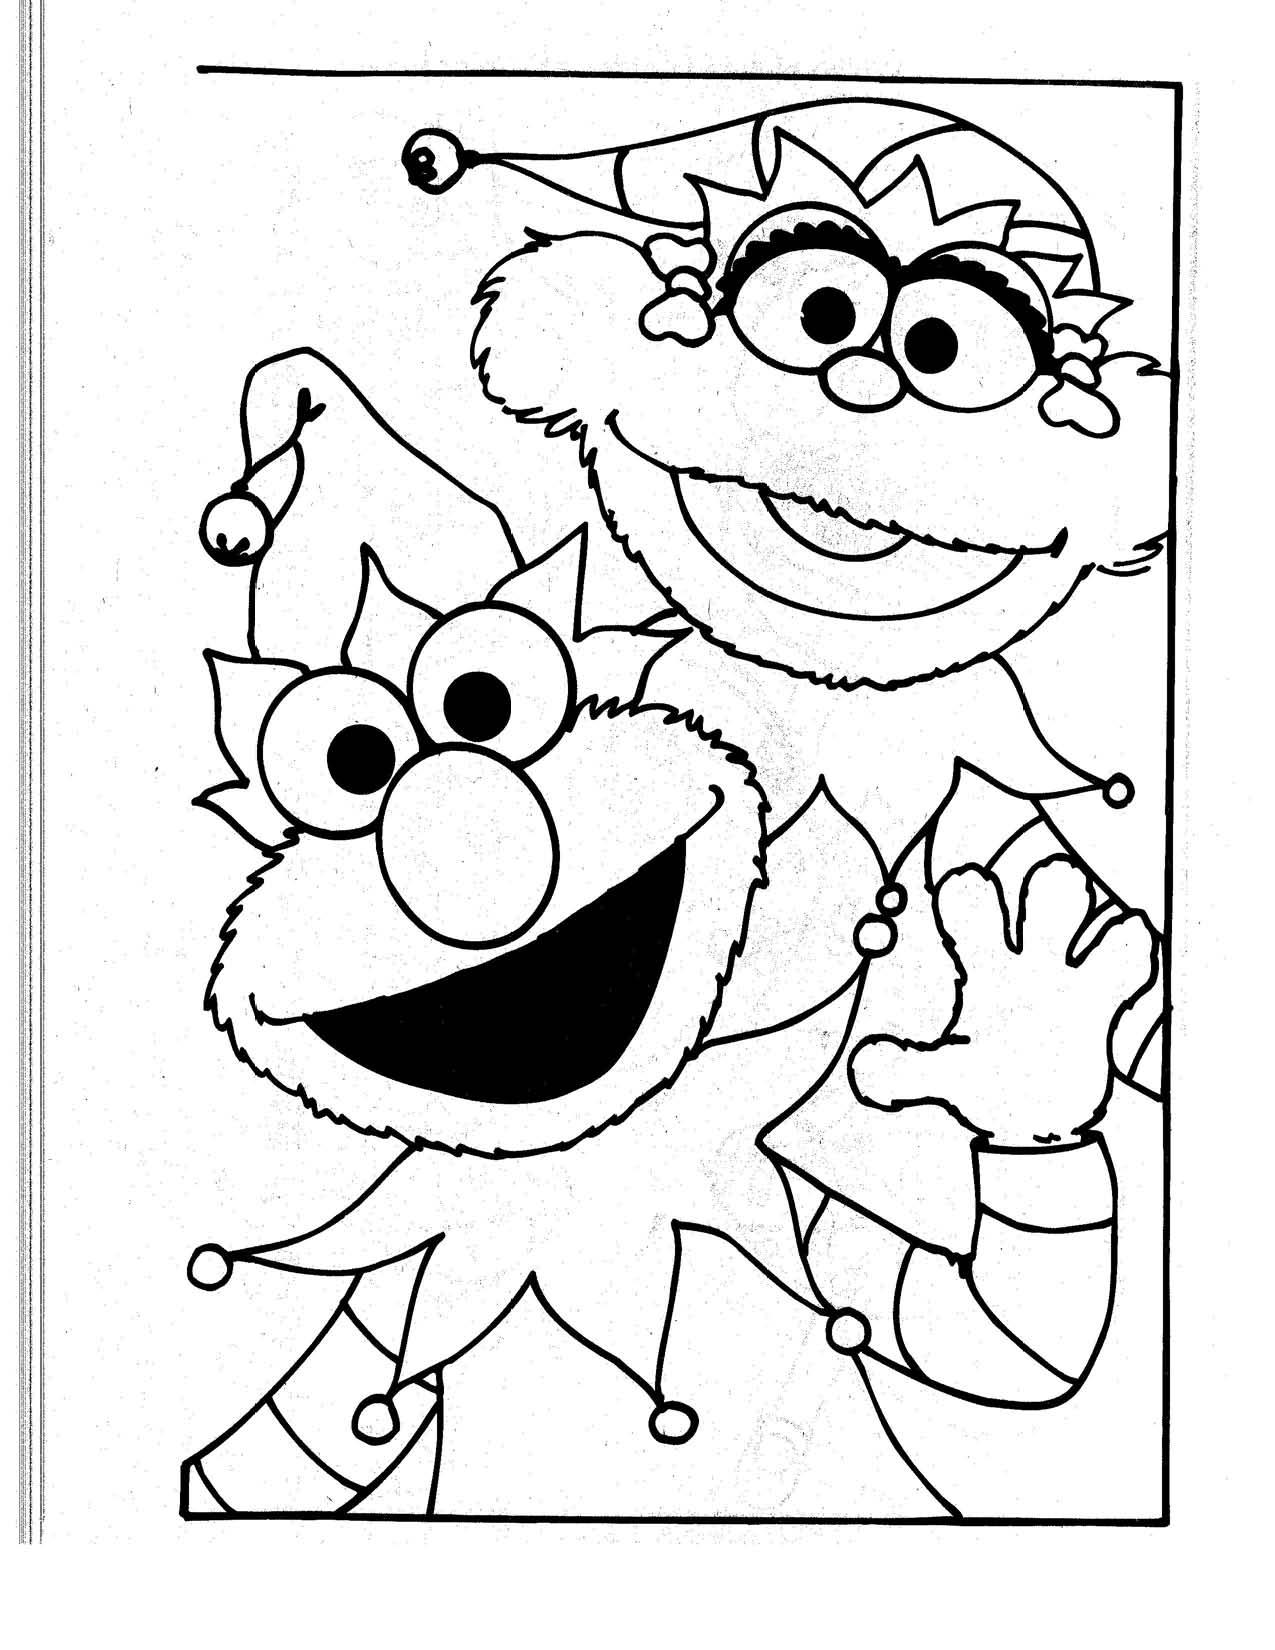 Coloring Pages Abby Coloring Pages free printable elmo coloring pages for kids and abby pages